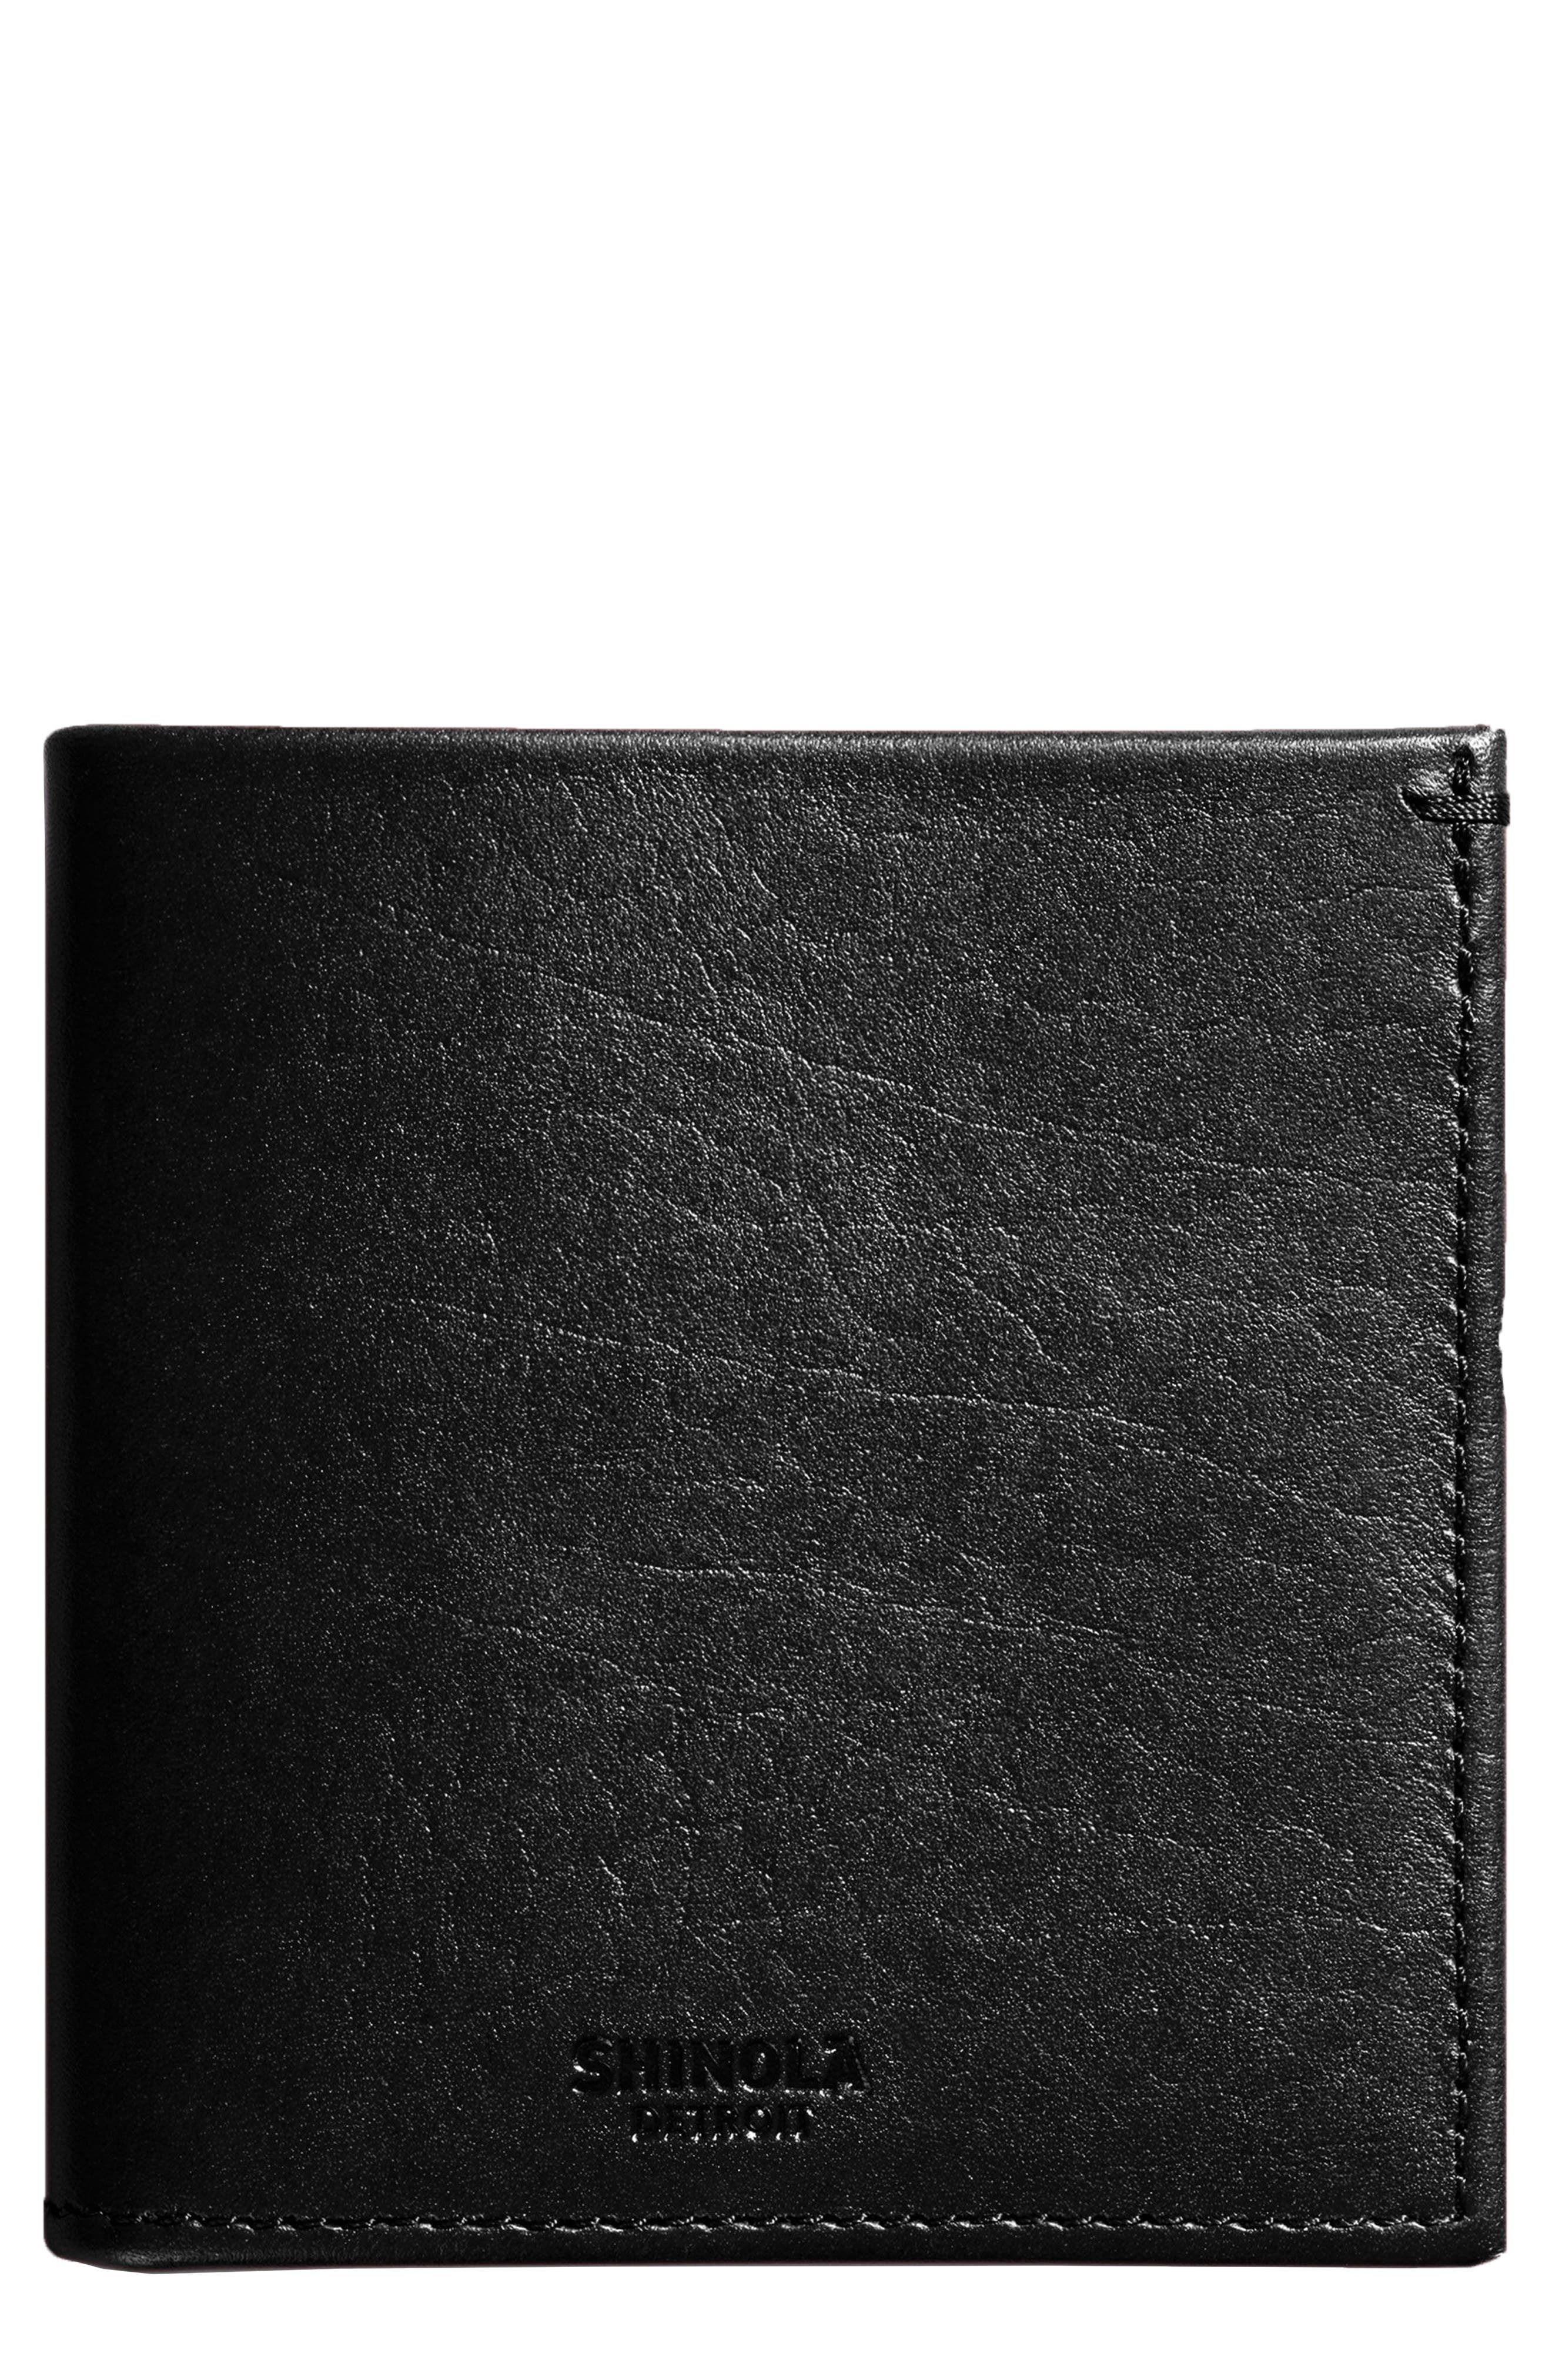 Square Bifold Leather Wallet,                         Main,                         color, Black